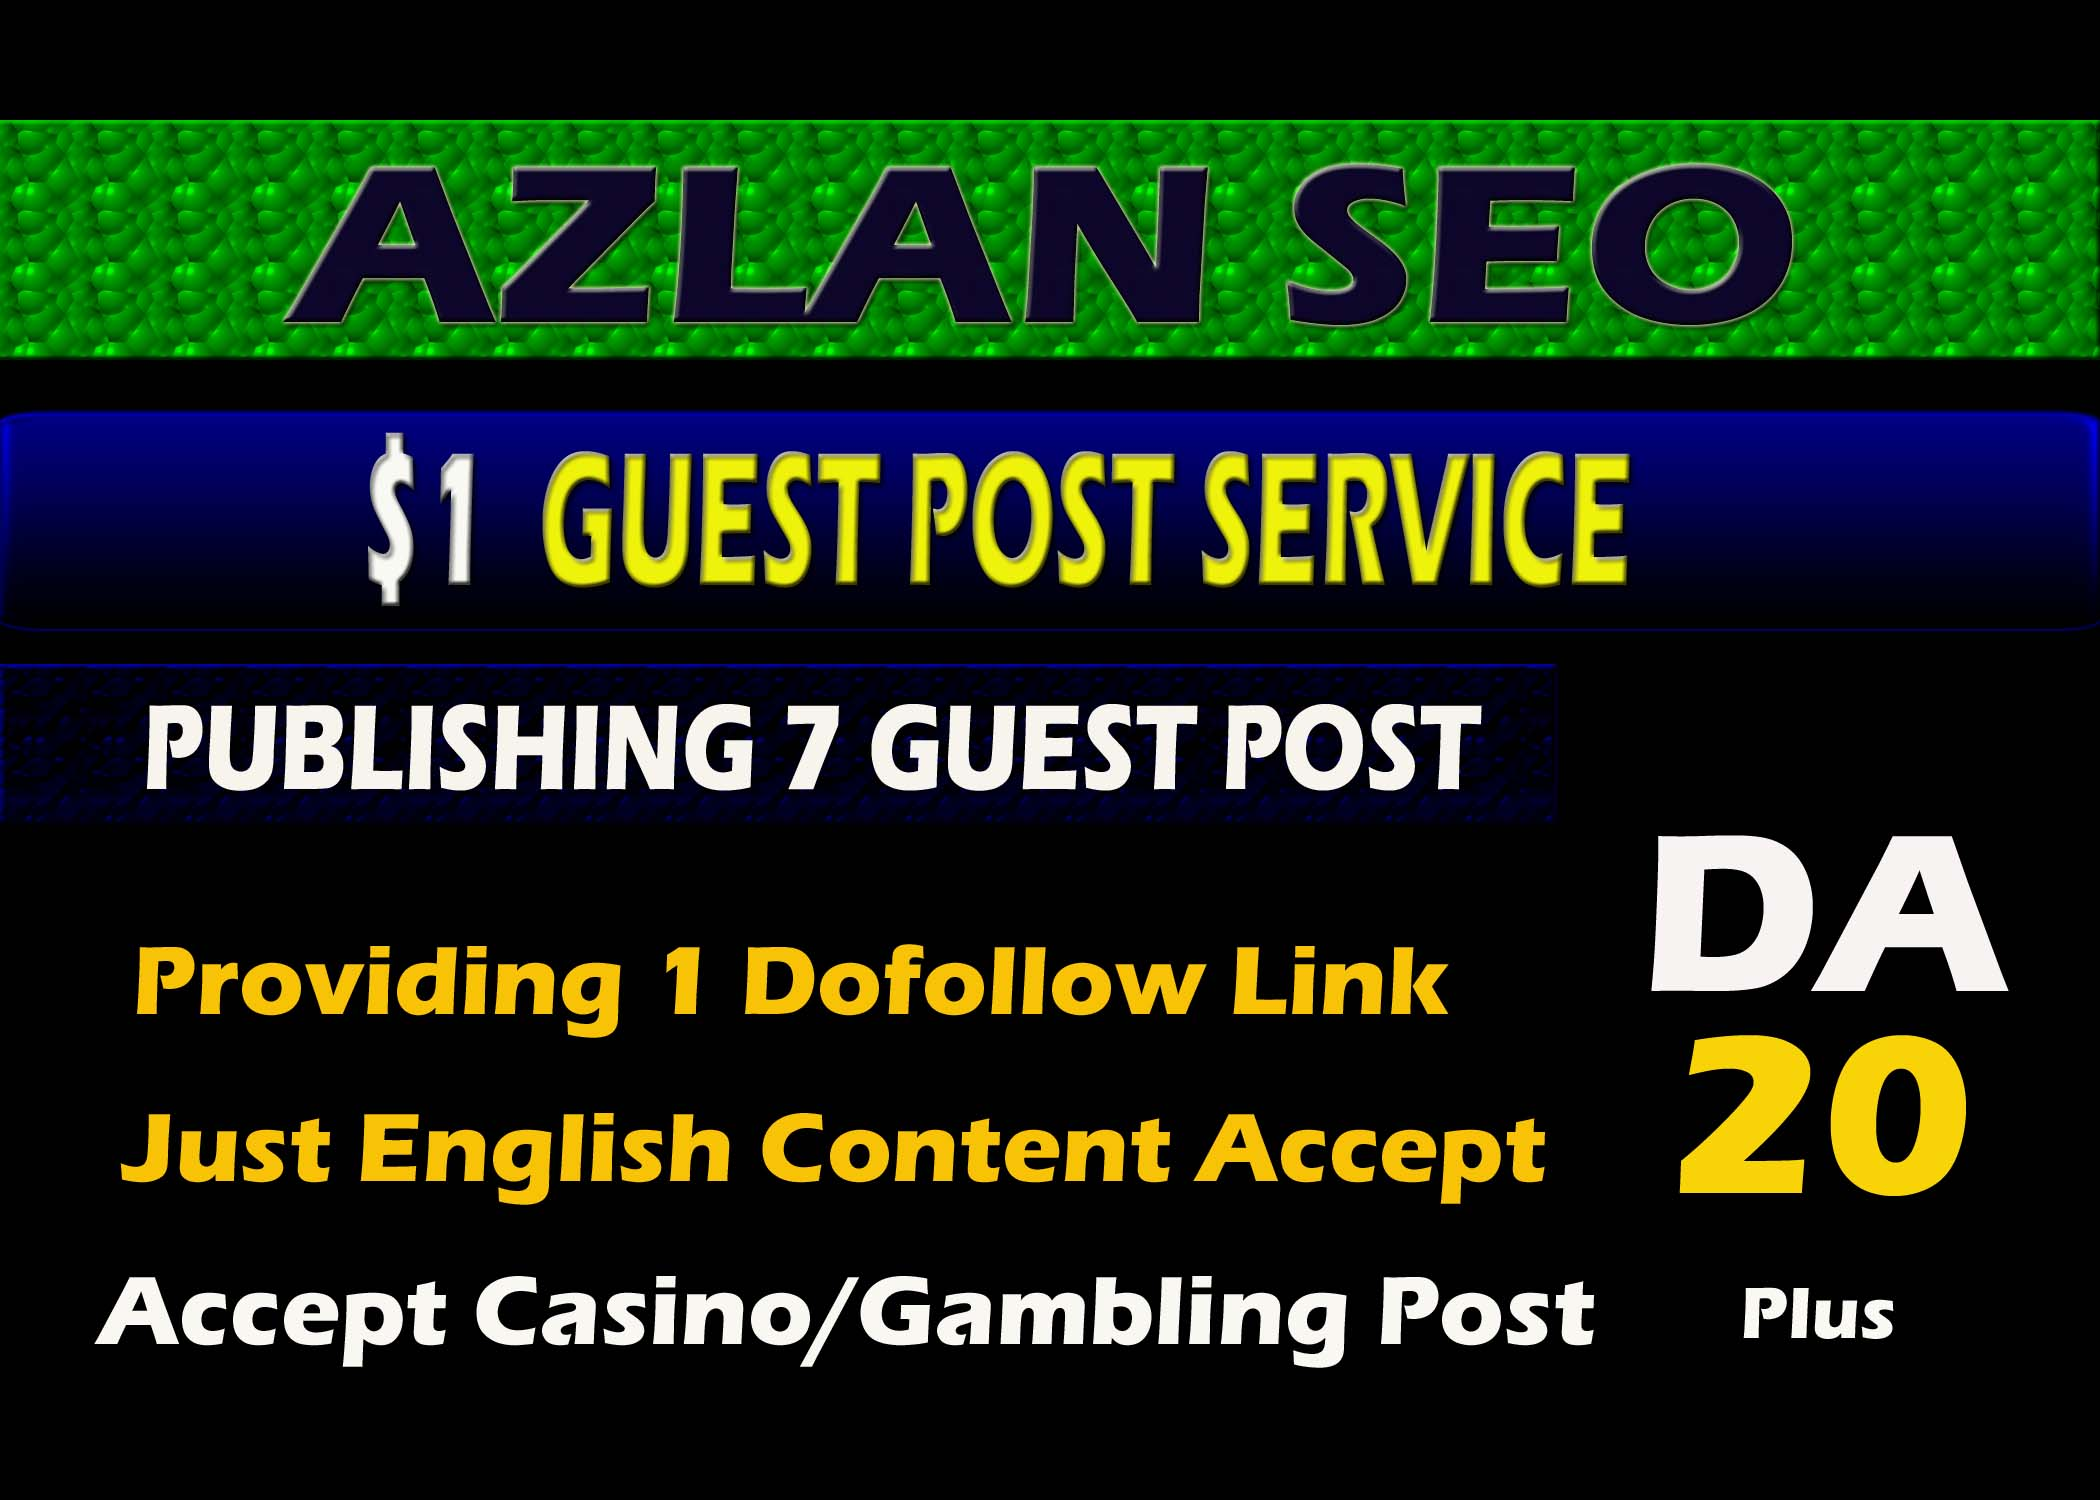 I will publish 7 guest post on my da 20 plus sites